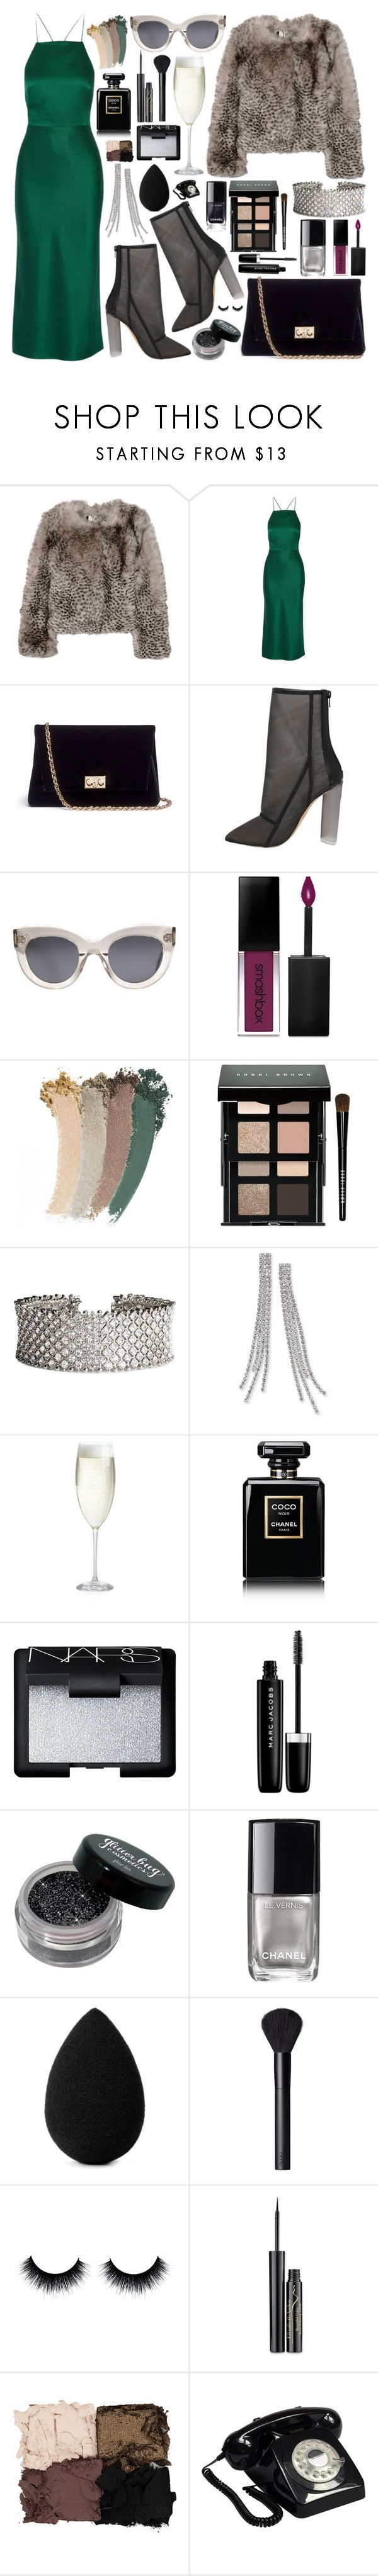 """MISTLETOE"" by queen-laureen ❤ liked on Polyvore featuring Topshop Unique, Jason Wu, Rodo, CÉLINE, Smashbox, Gucci, Bobbi Brown Cosmetics, Thalia Sodi, Crate and Barrel and Chanel"